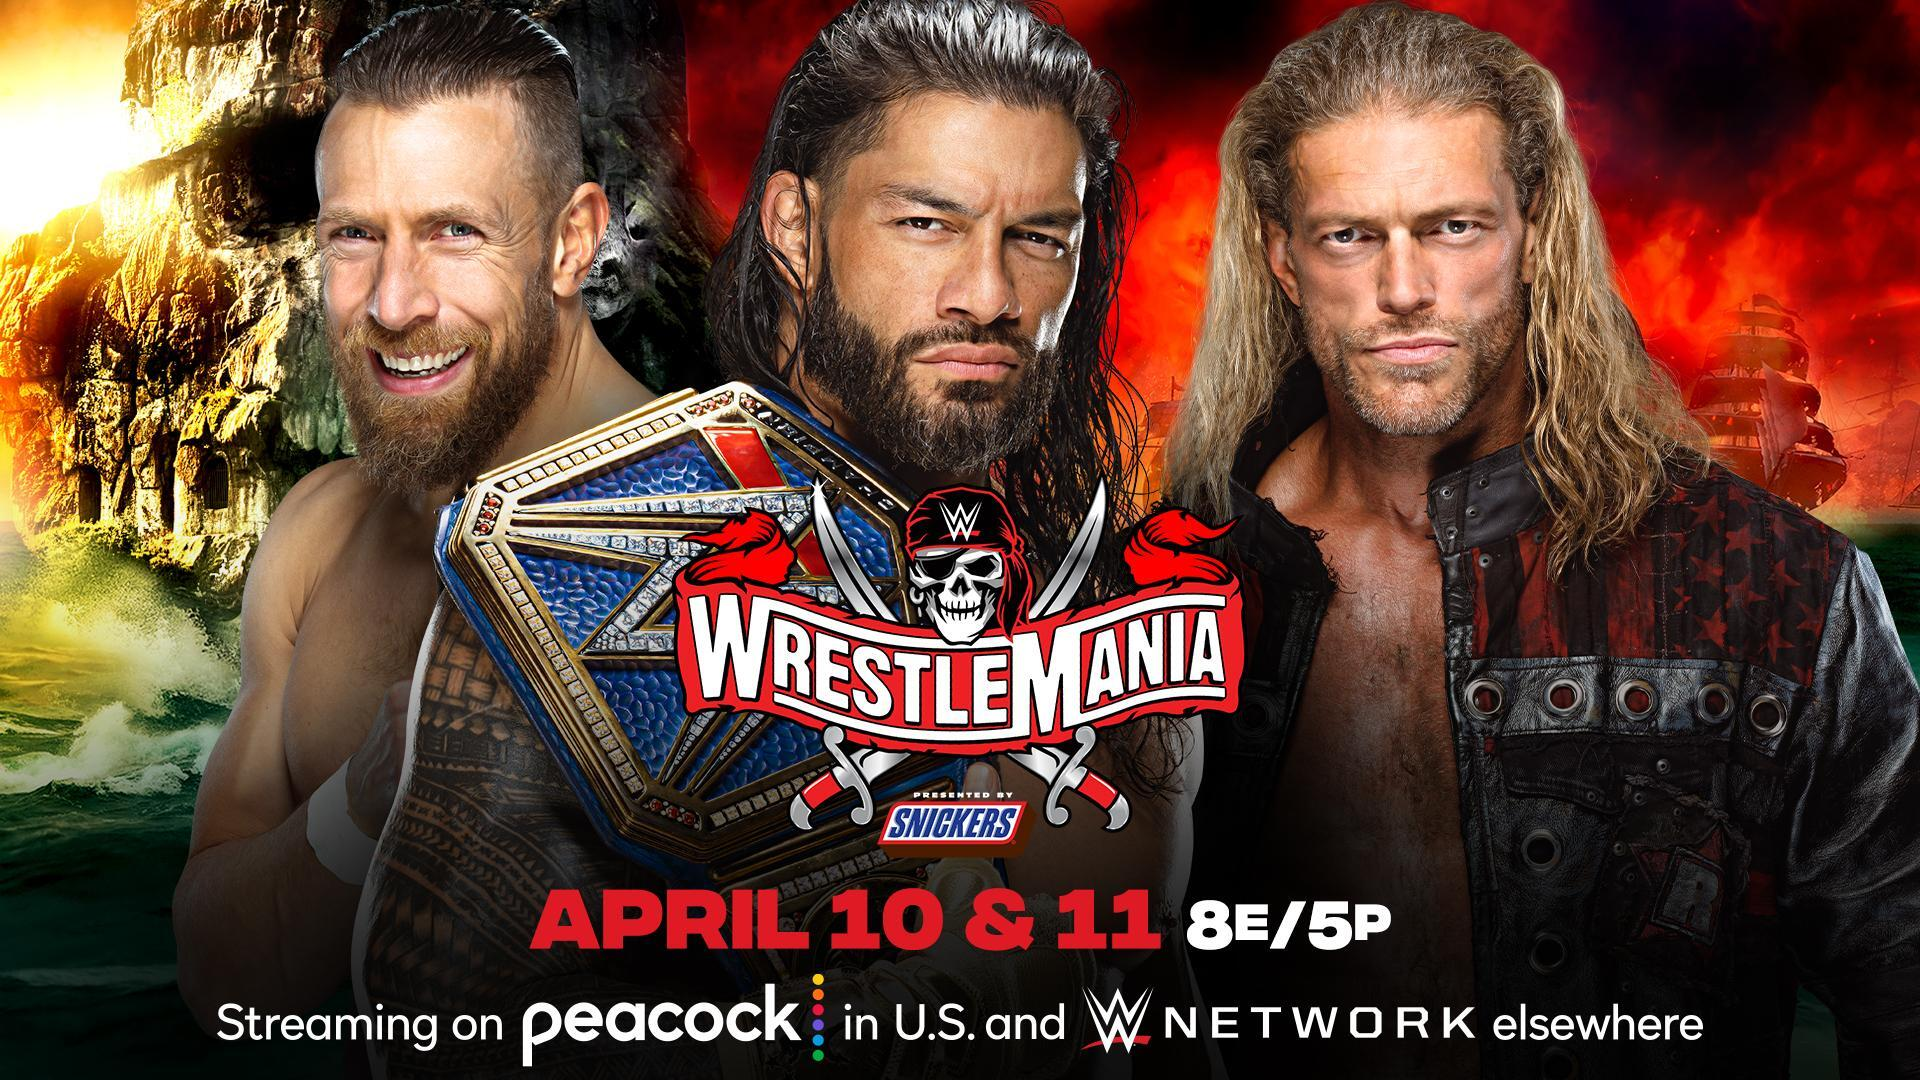 Wwe Wrestlemania 37 How To Watch Full Card Predictions And Start Times Cnet